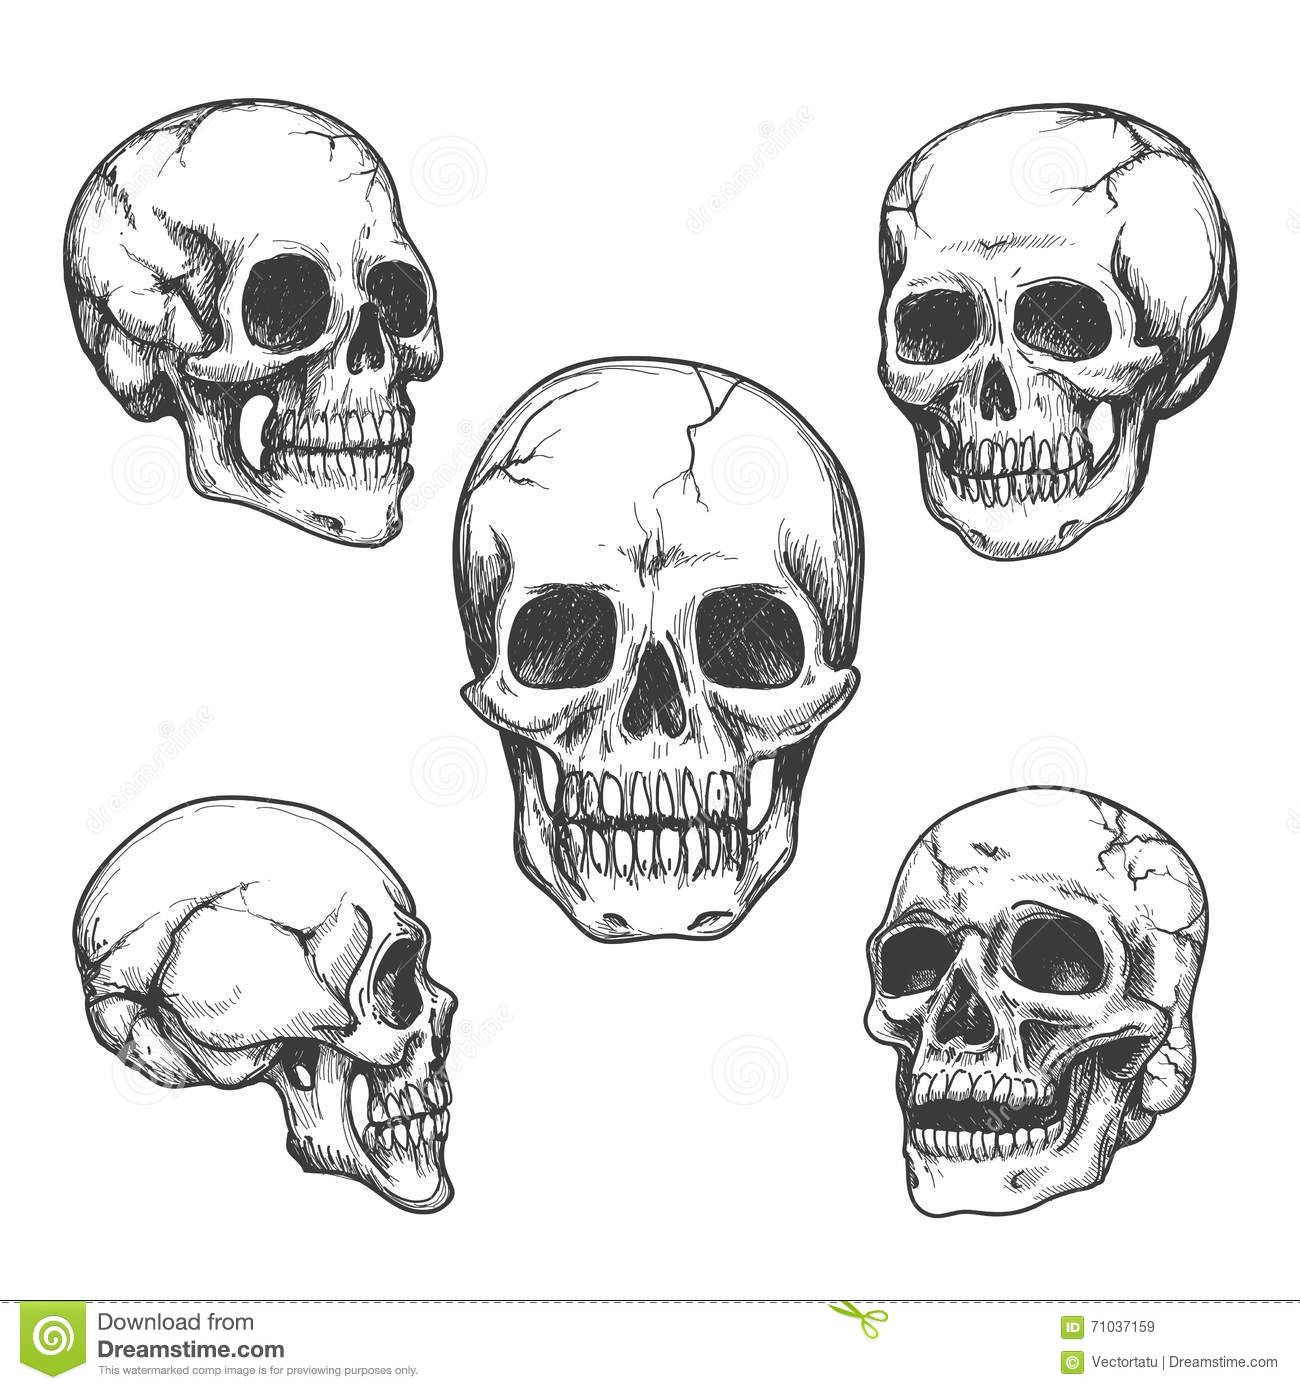 Related image Skulls drawing, How to draw hands, Skull